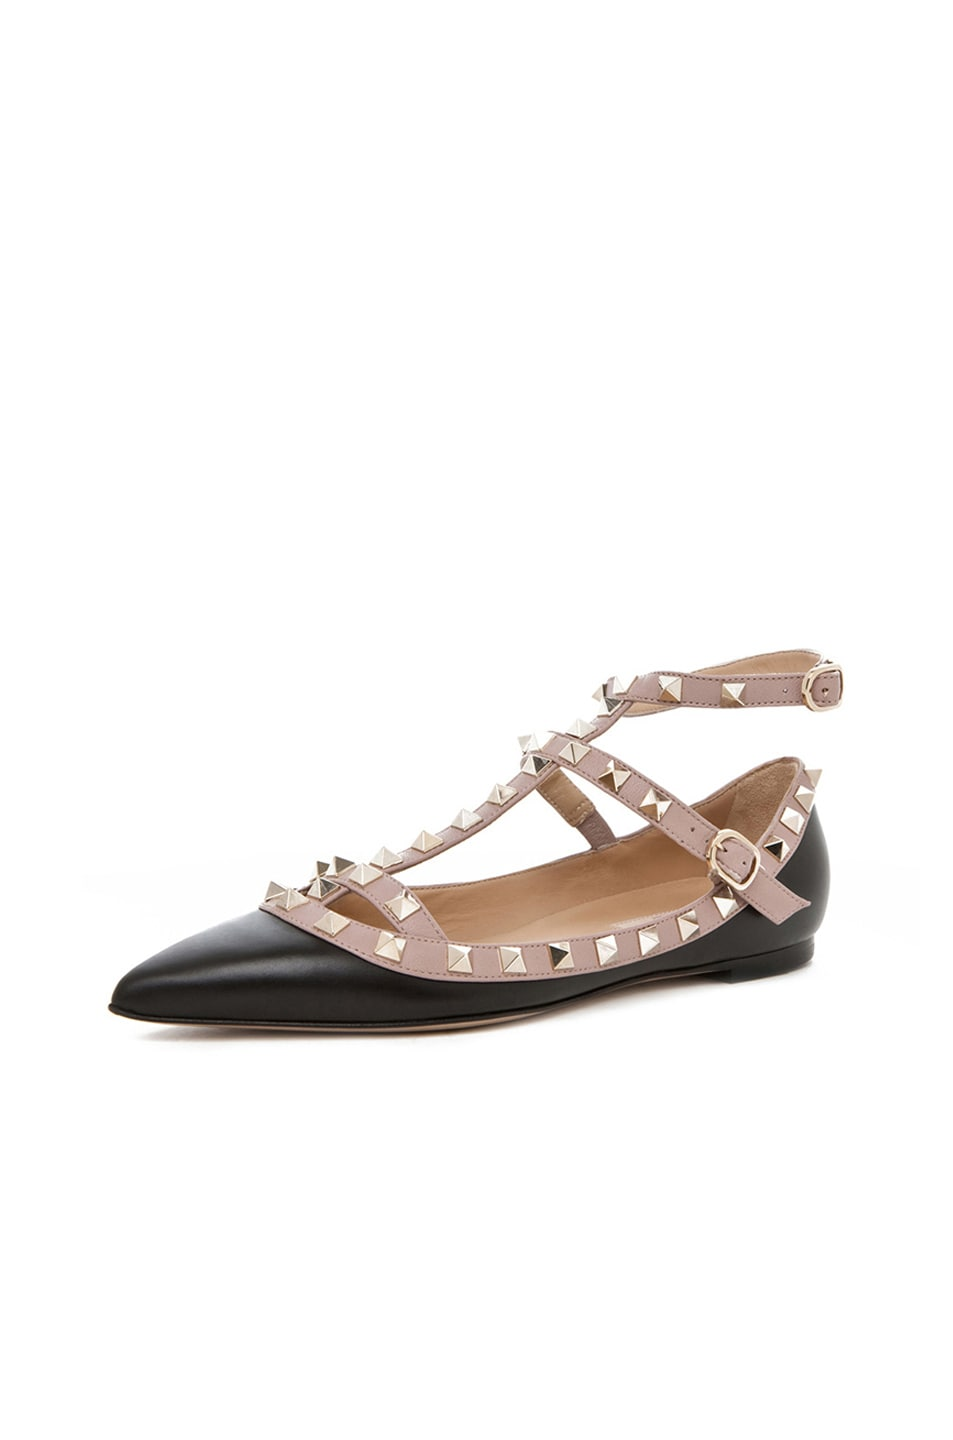 Image 2 of Valentino Rockstud Leather Cage Flats in Black